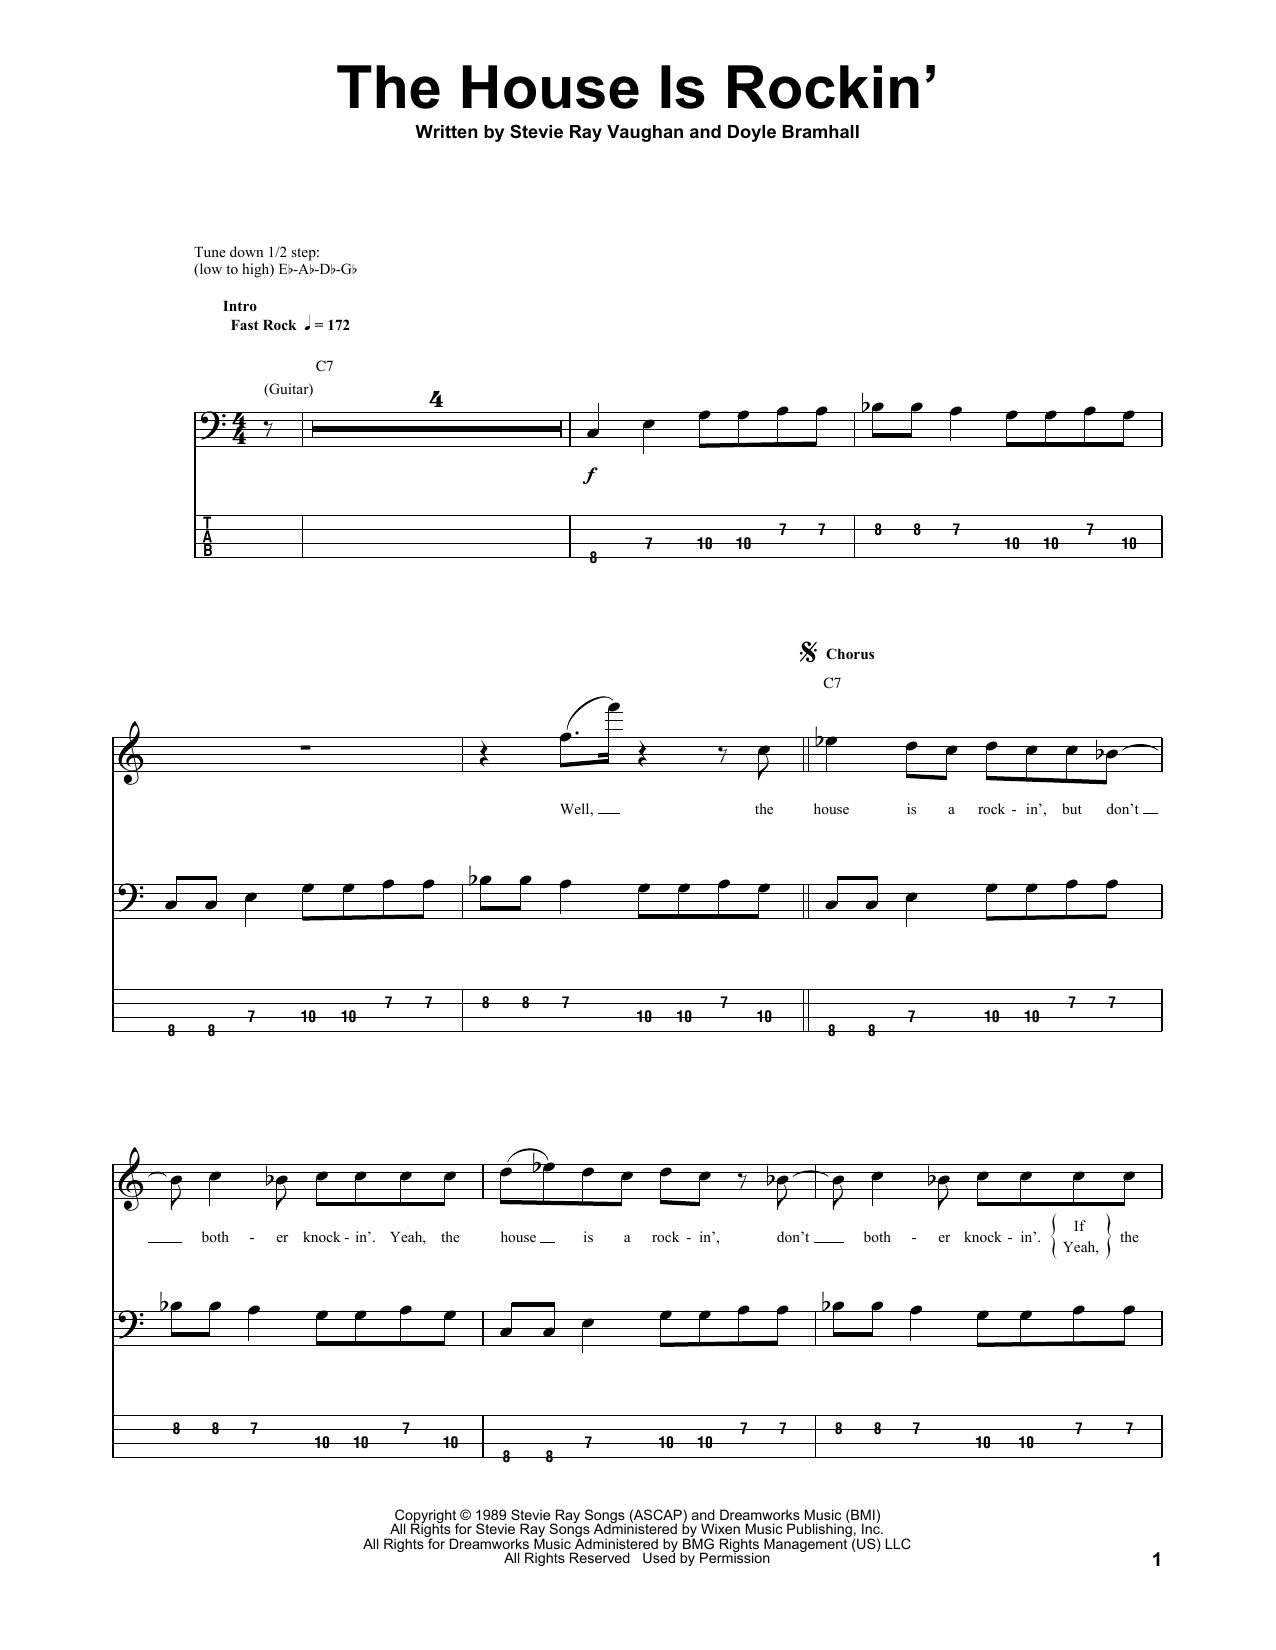 Tablature guitare The House Is Rockin' de Stevie Ray Vaughan - Tablature Basse